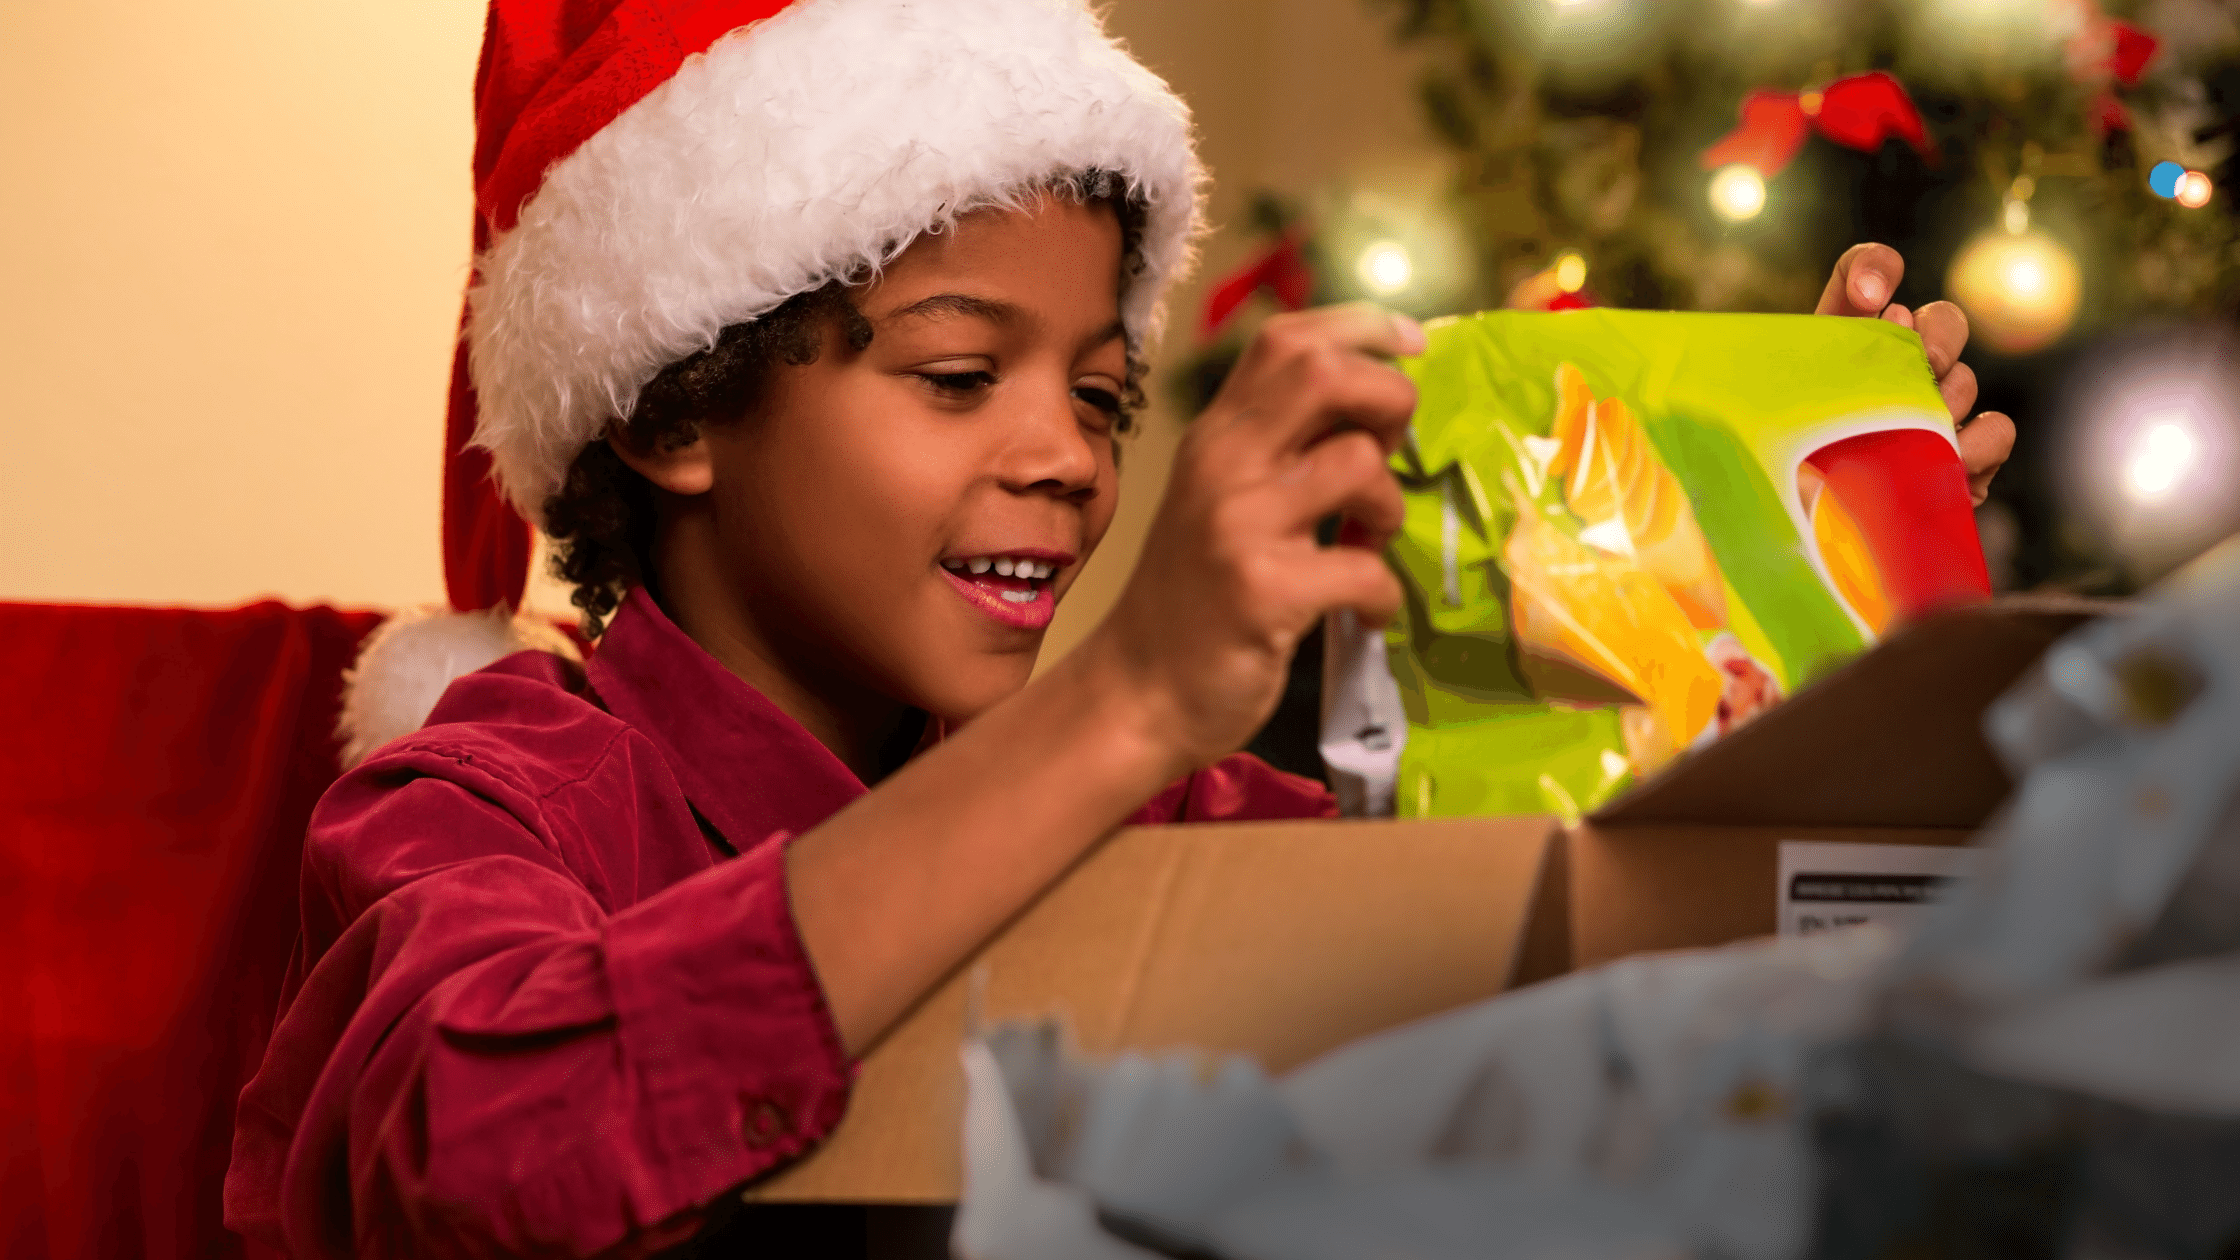 Boy smiling while opening a holiday gift of a coding program